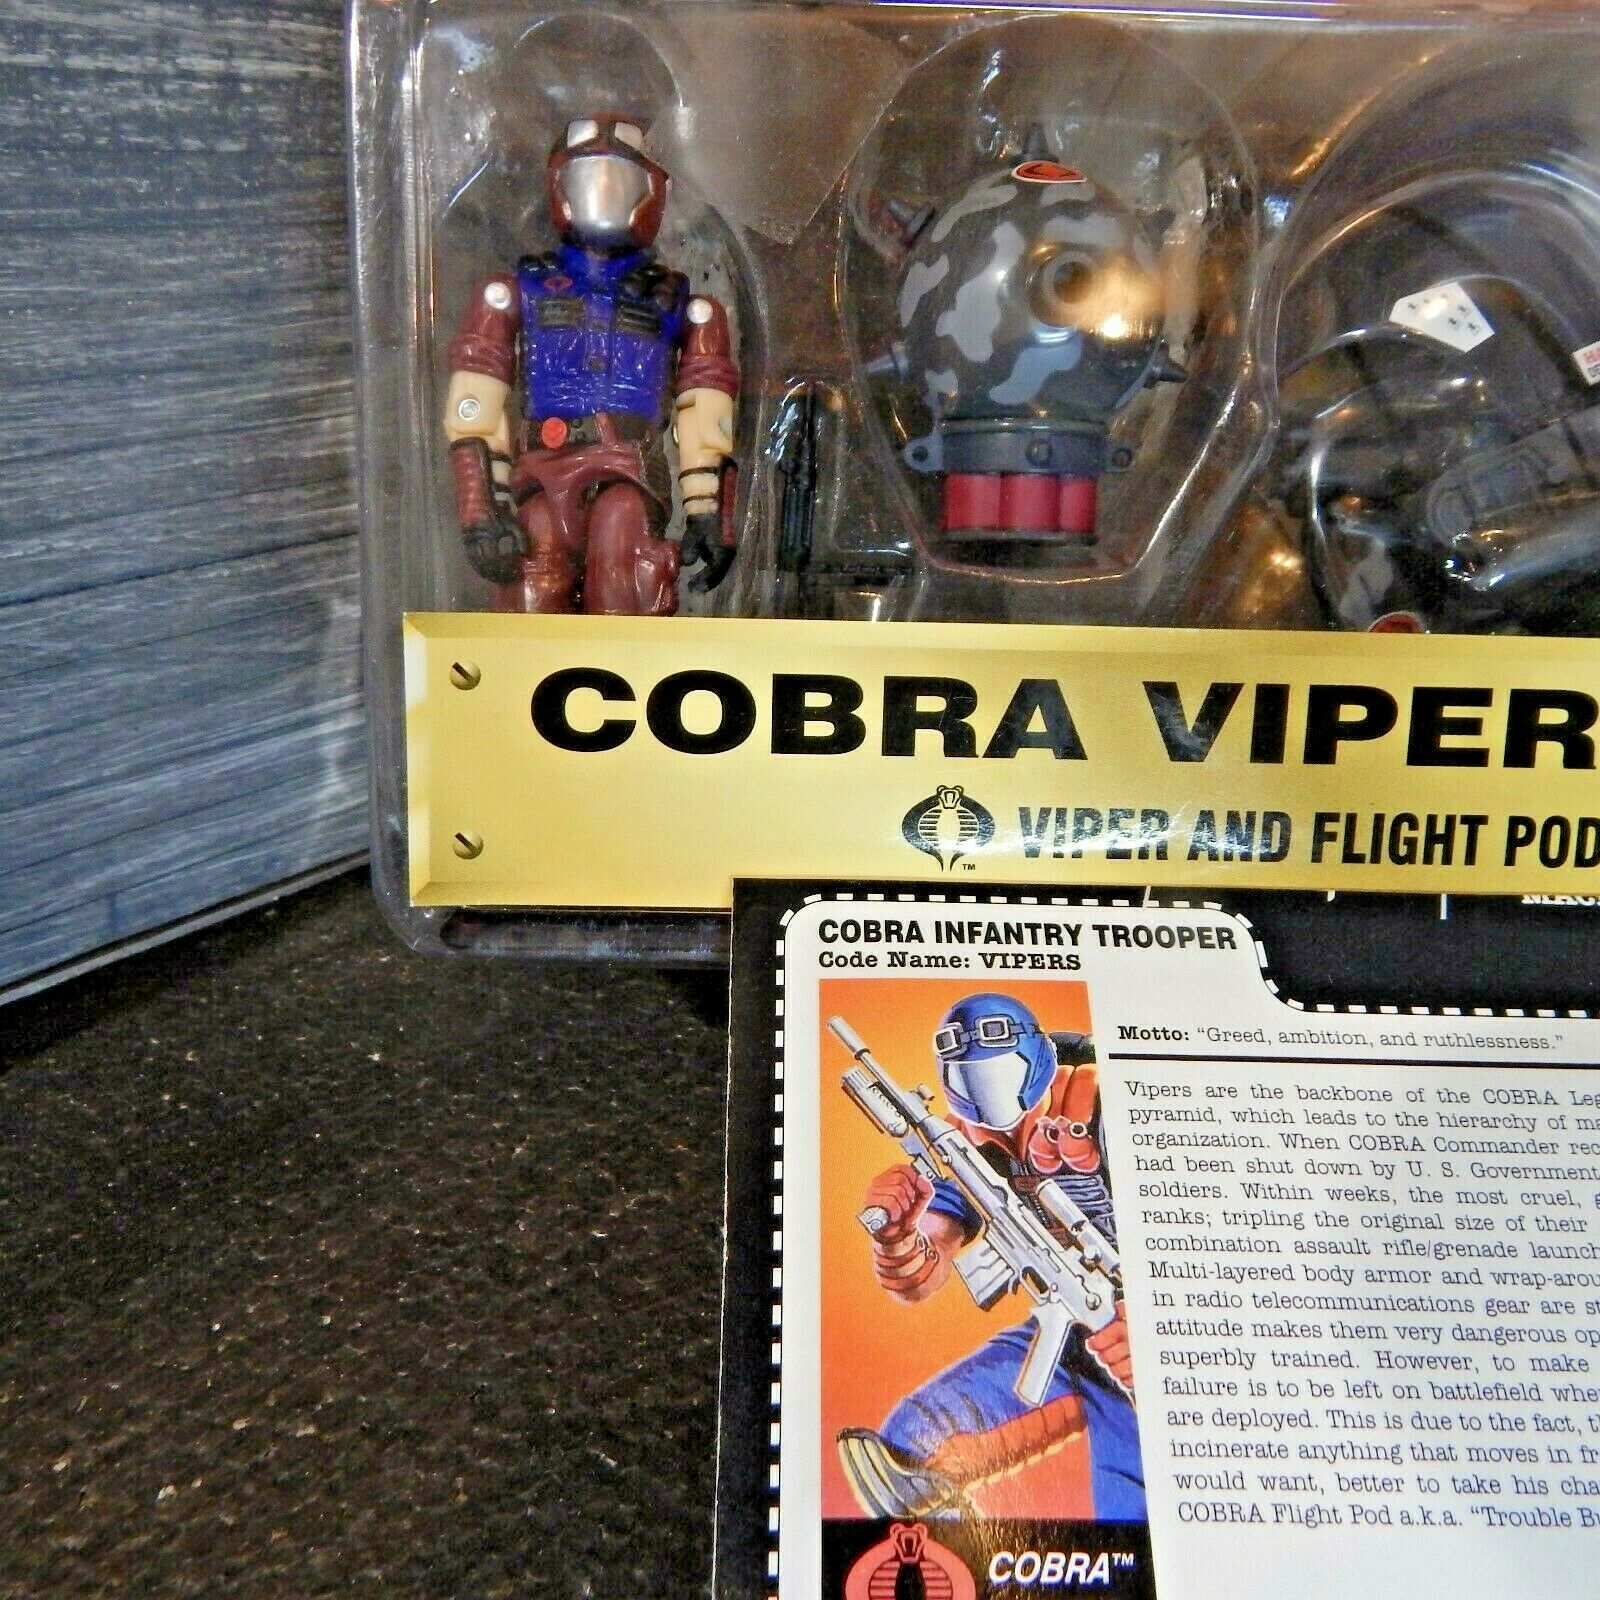 GI JOE  1997 COBRA VIPER &  Flumière POD  VIPER TEAM  100% complete & voitureD  les promotions